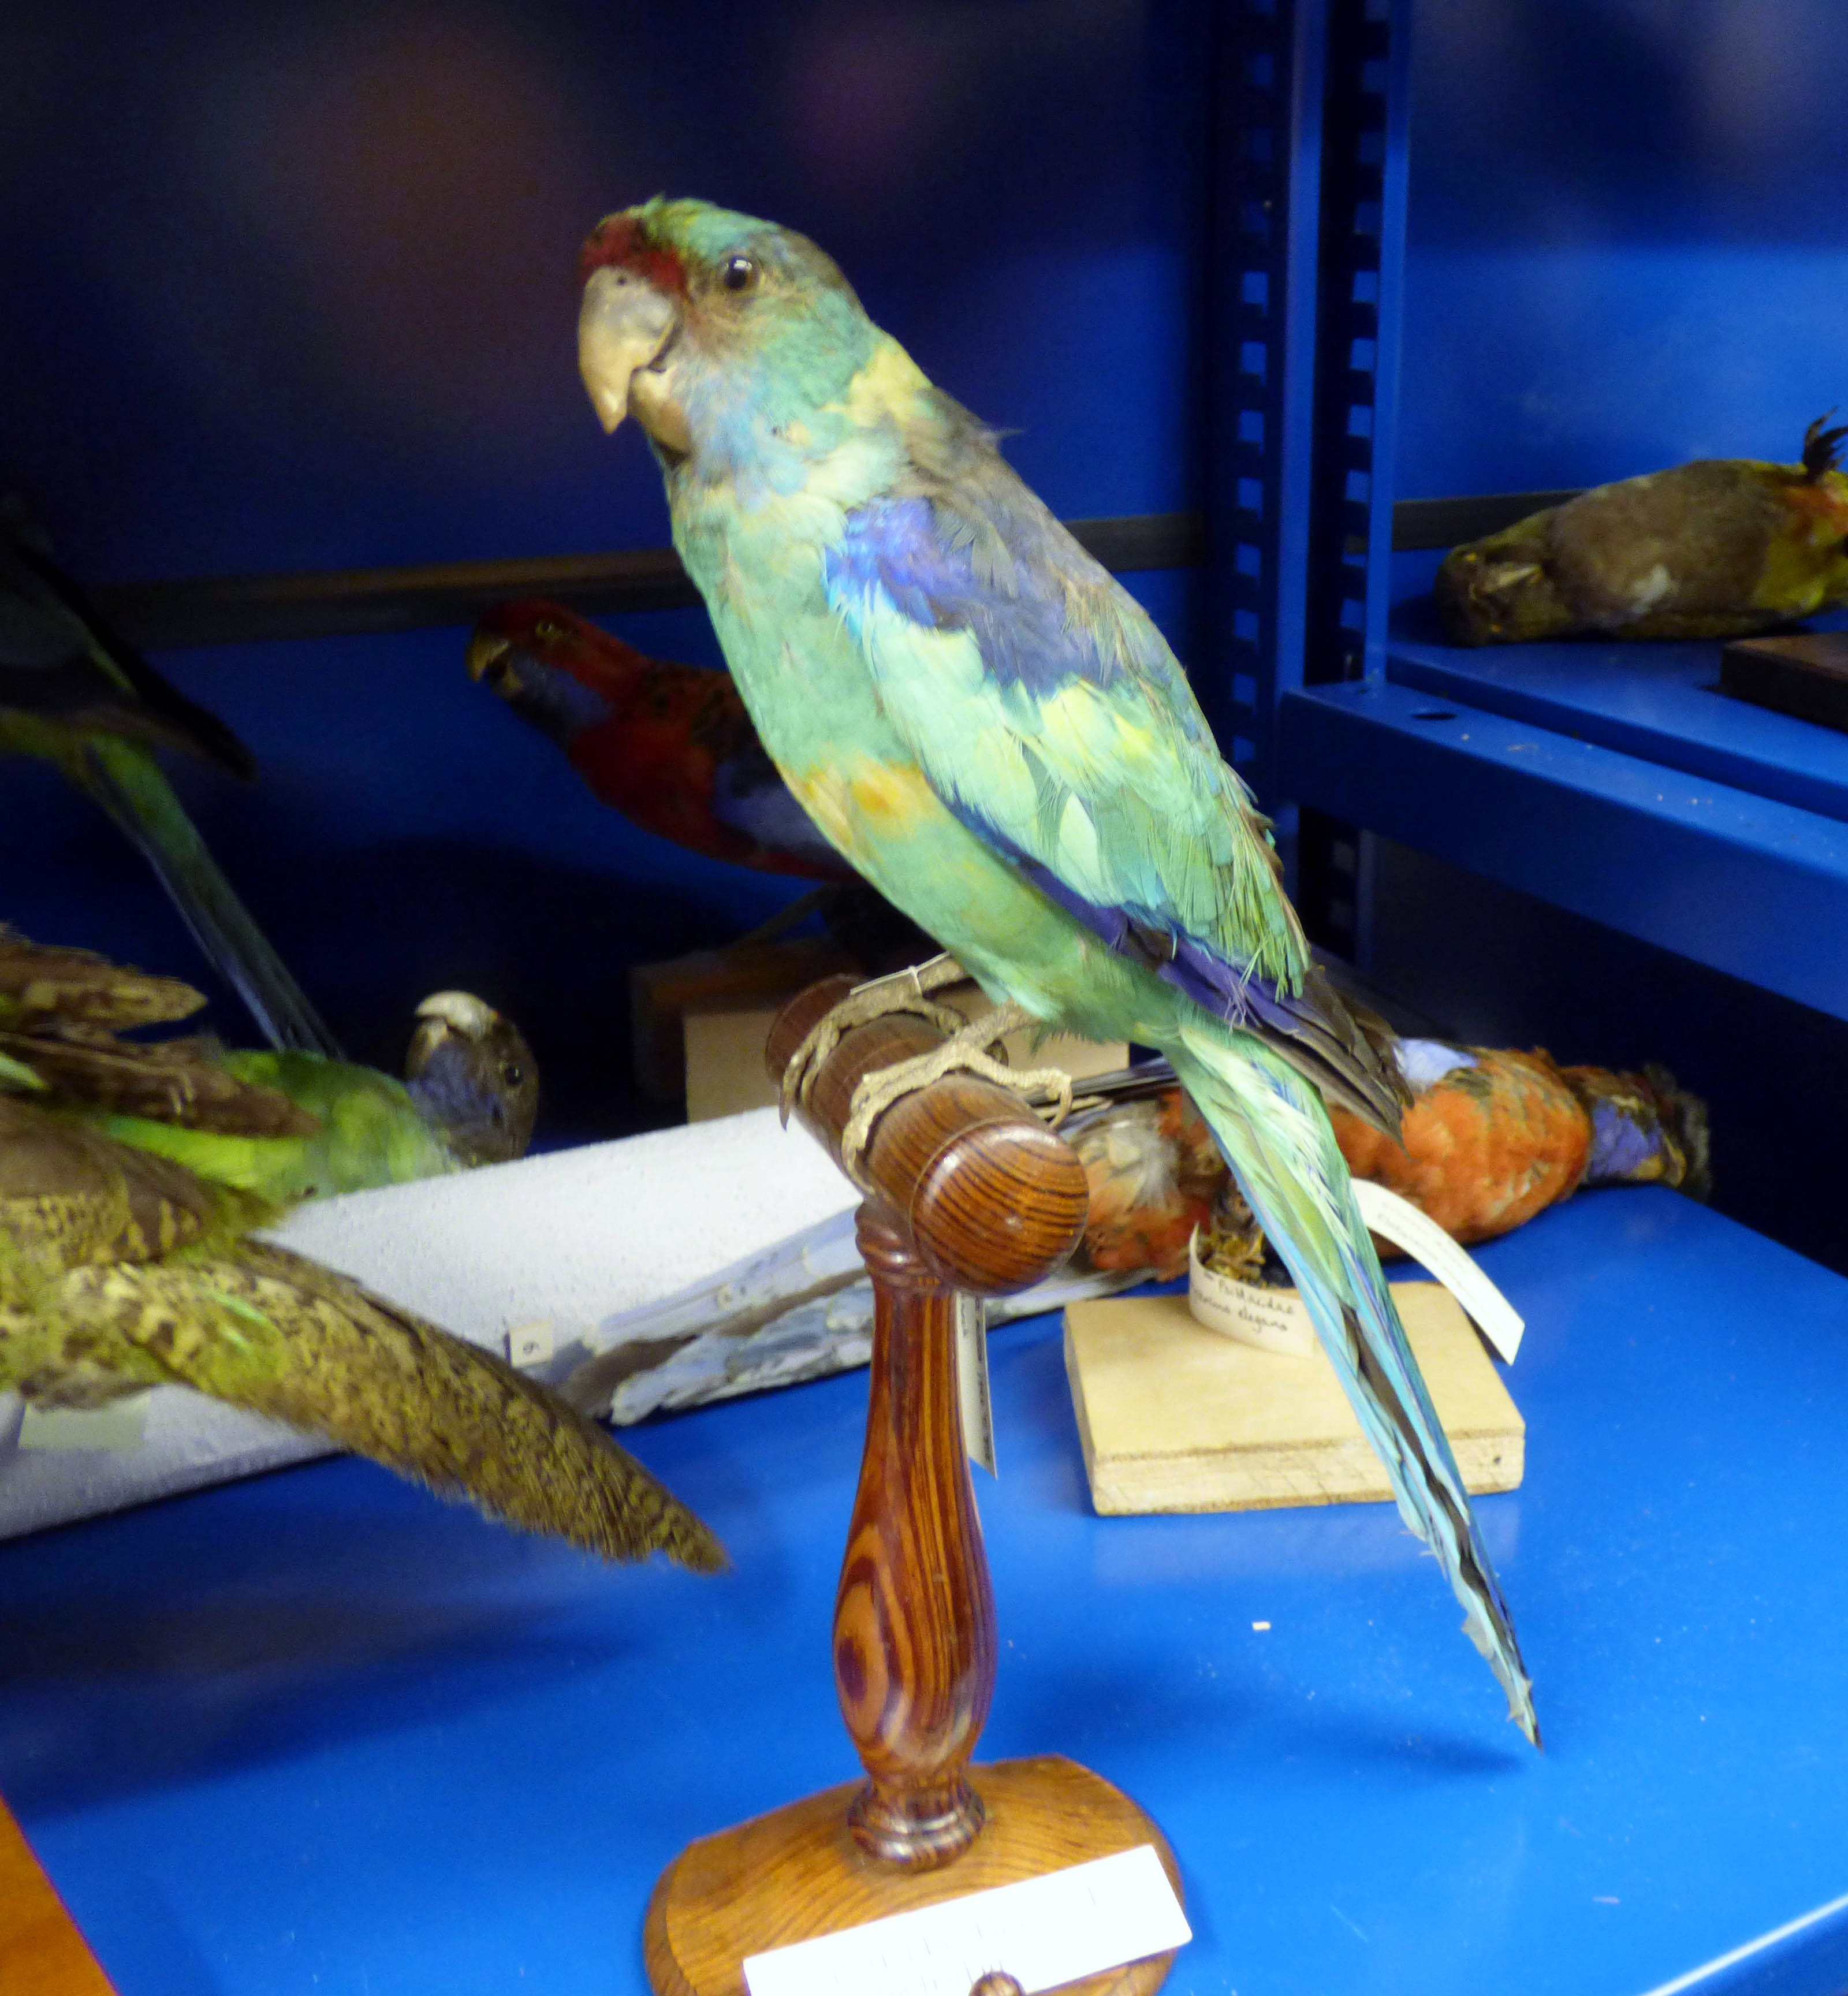 Taxidermy, Port Lincon Parrot from W. Australia, MEG behind the scenes tour at Liverpool World Museum, 2018